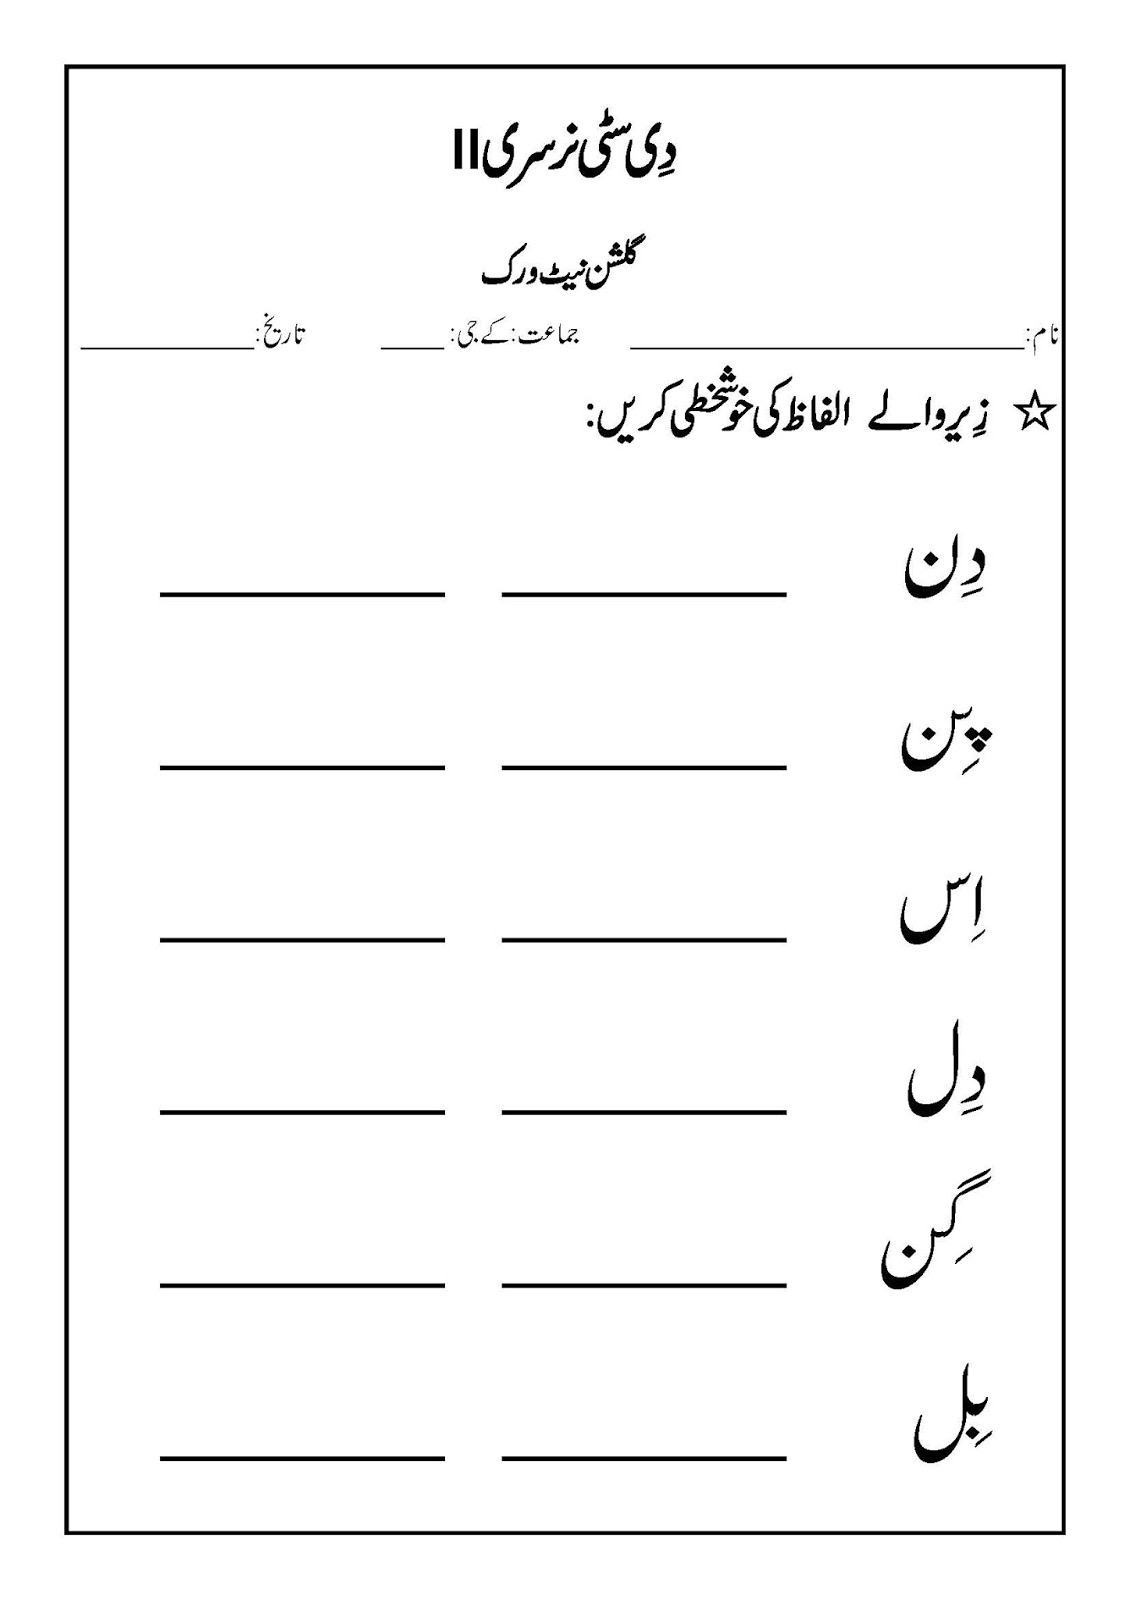 Sr Gulshan The City Nursery Ii Urdu Kuwa And English Worksheets